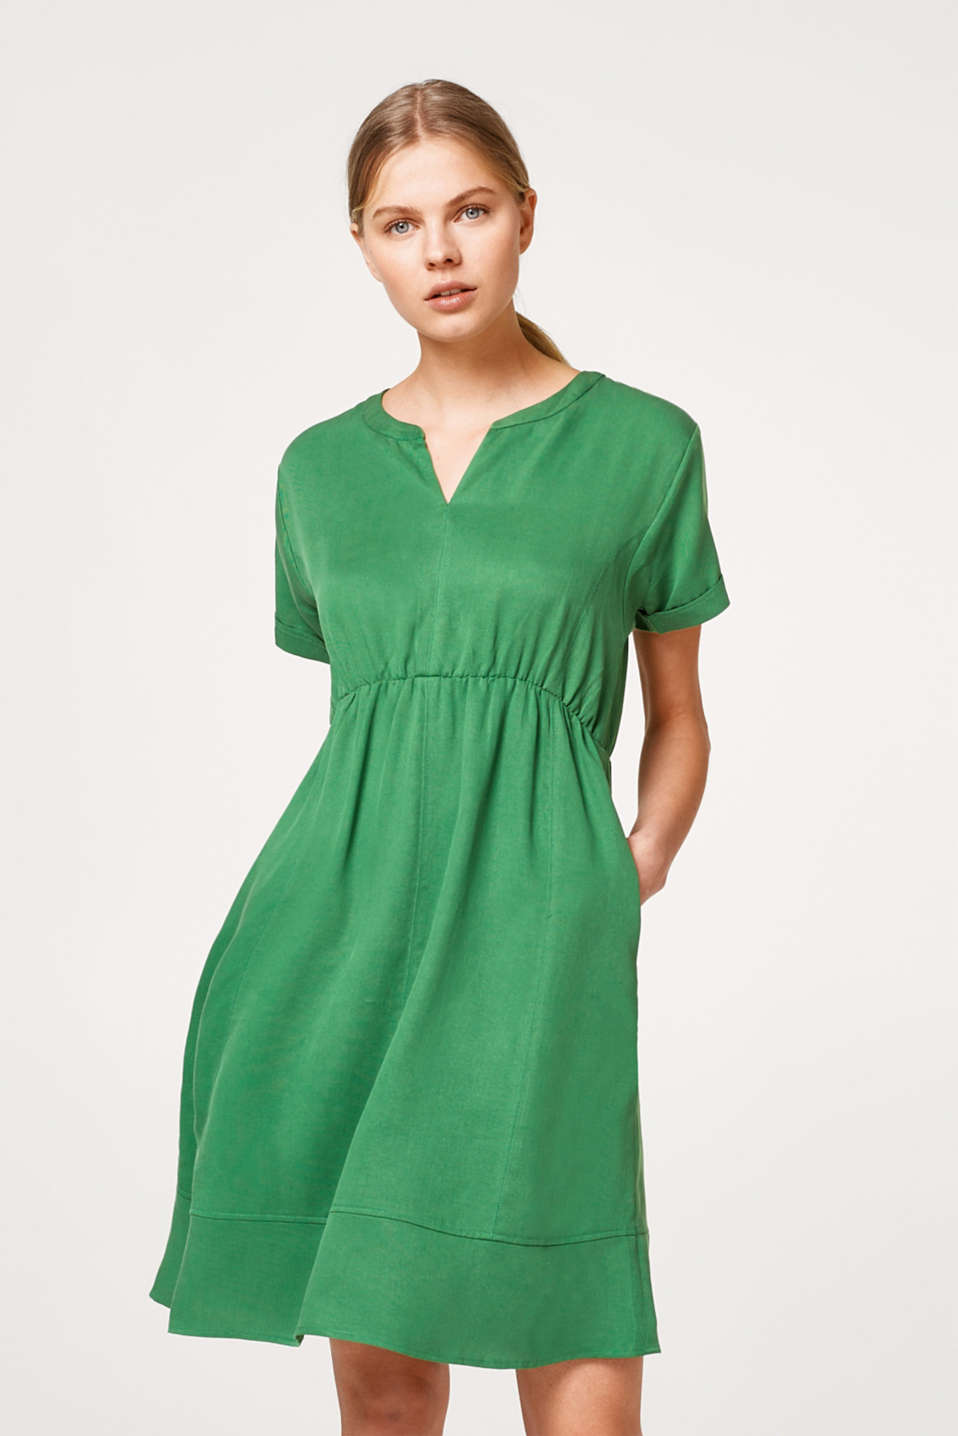 Esprit - Textured dress with a tulip neckline